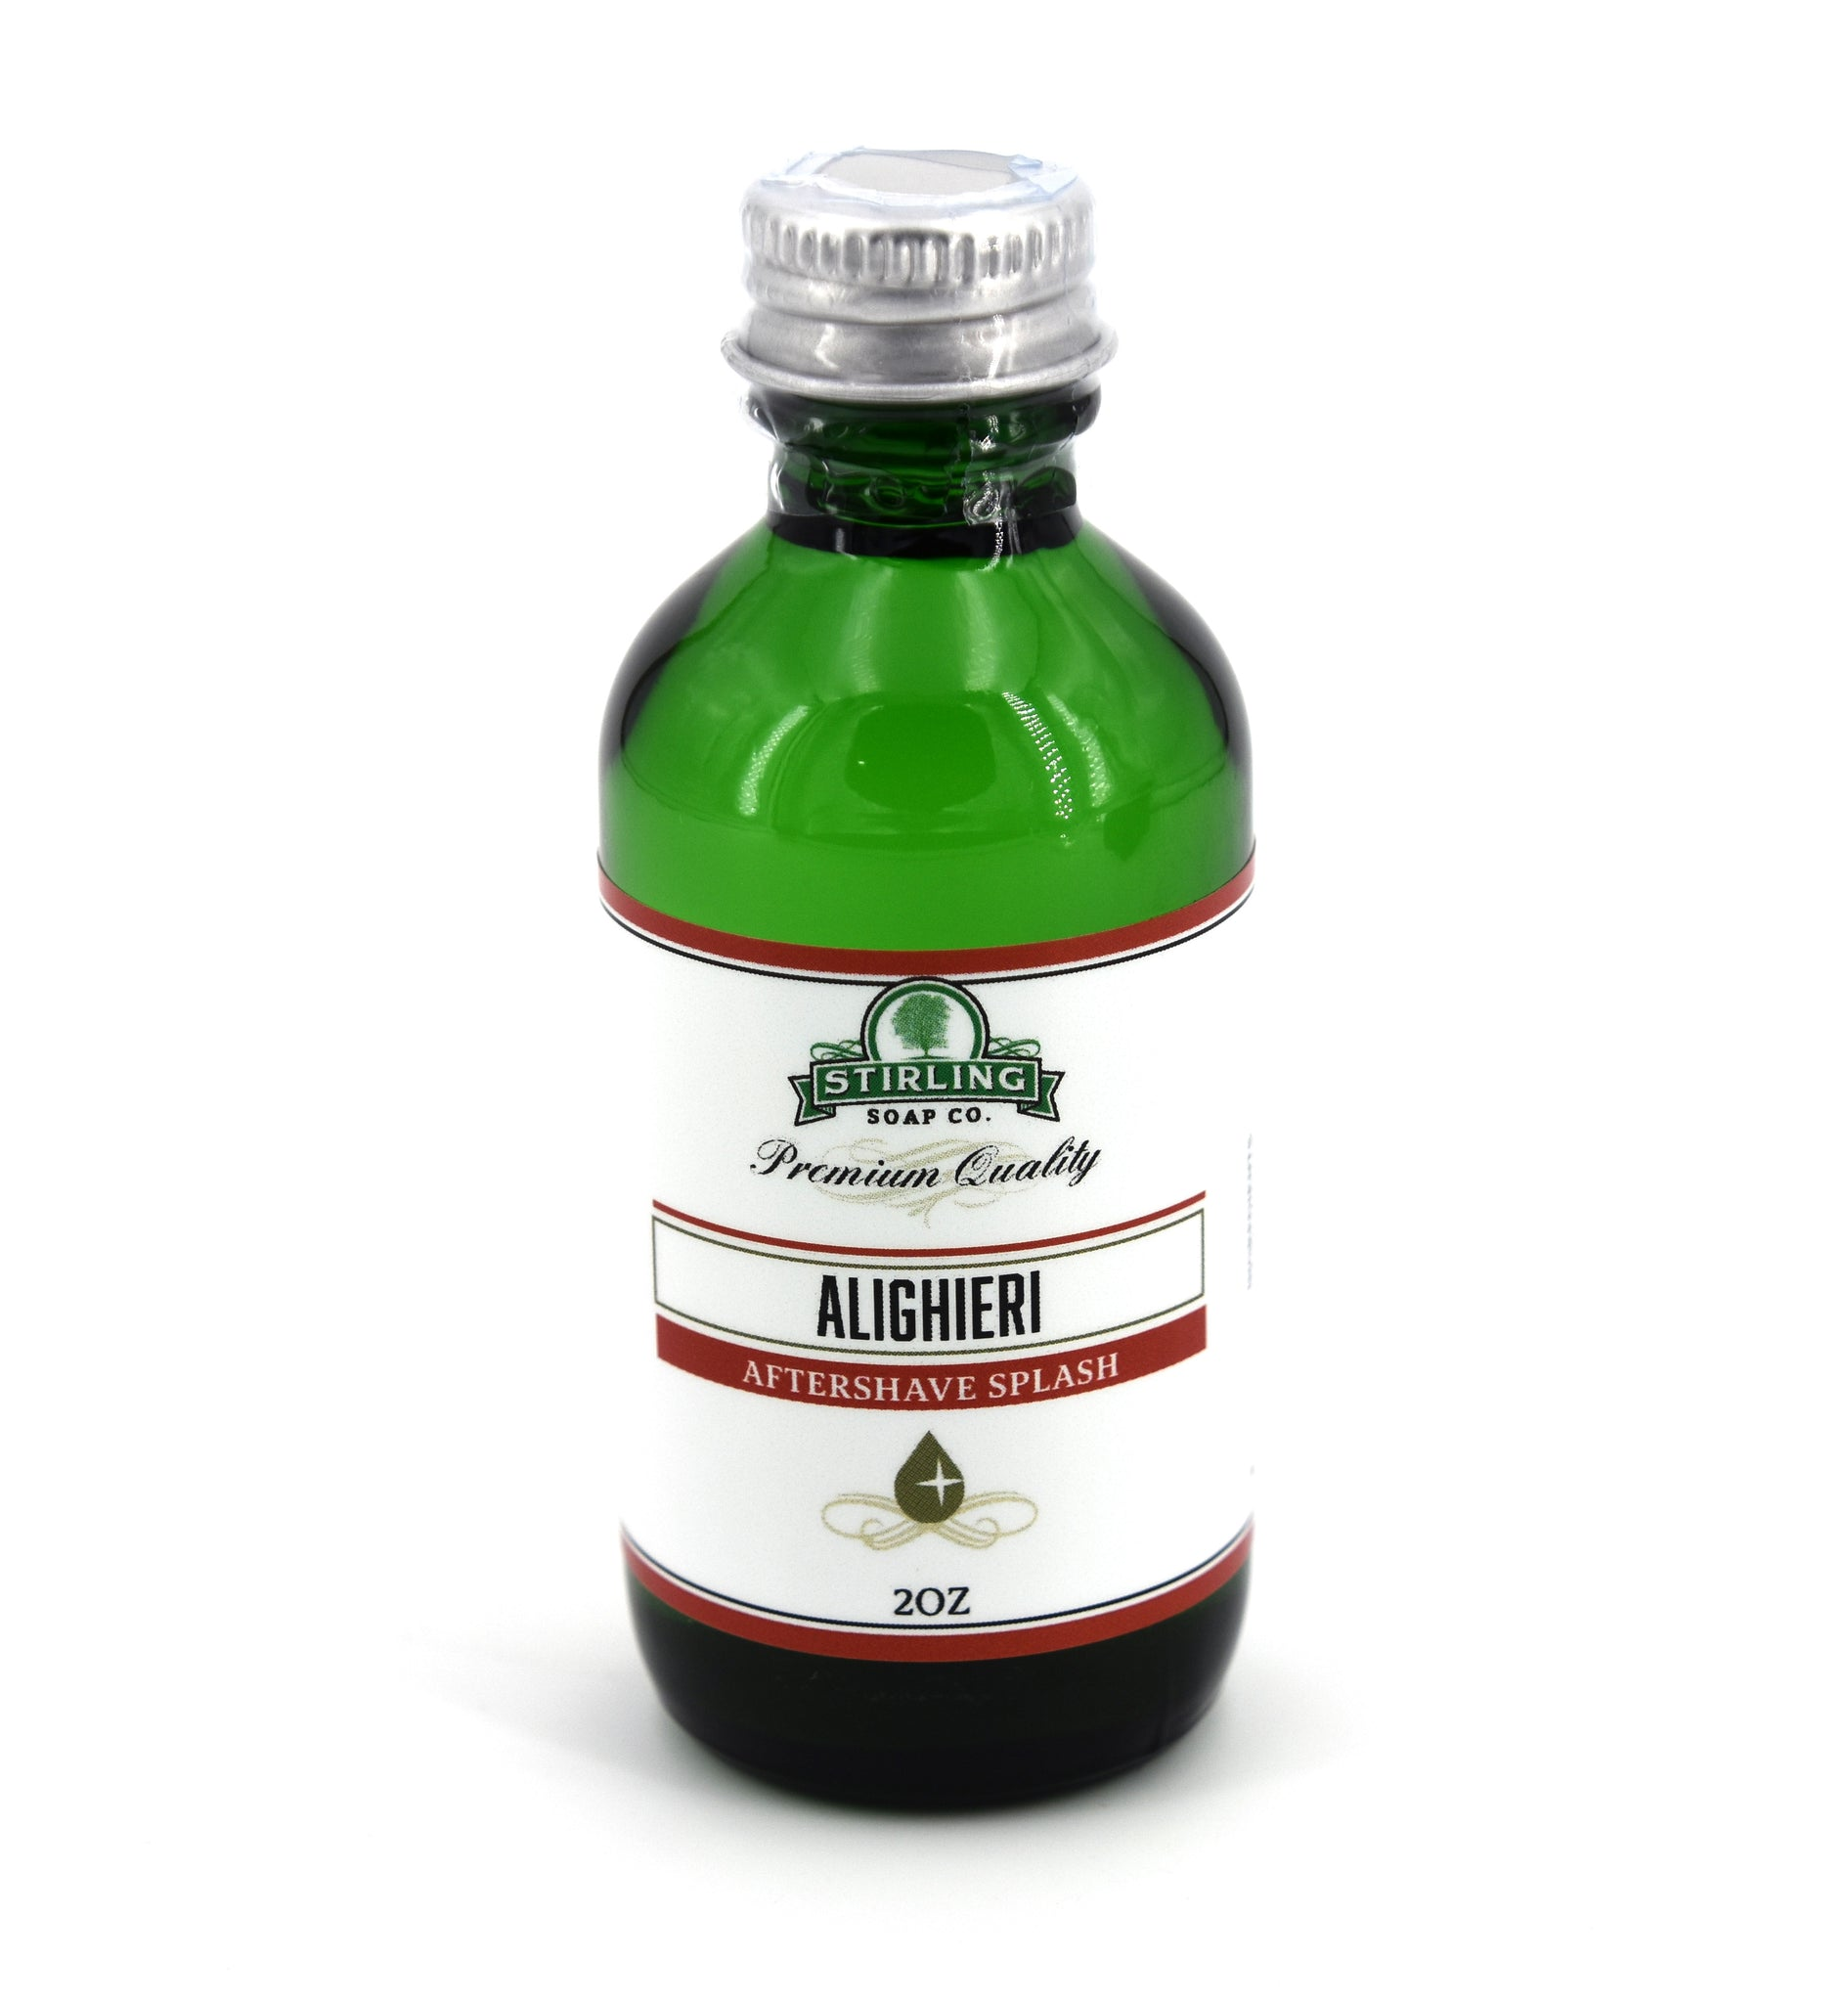 Alighieri- Aftershave Splash (2oz)